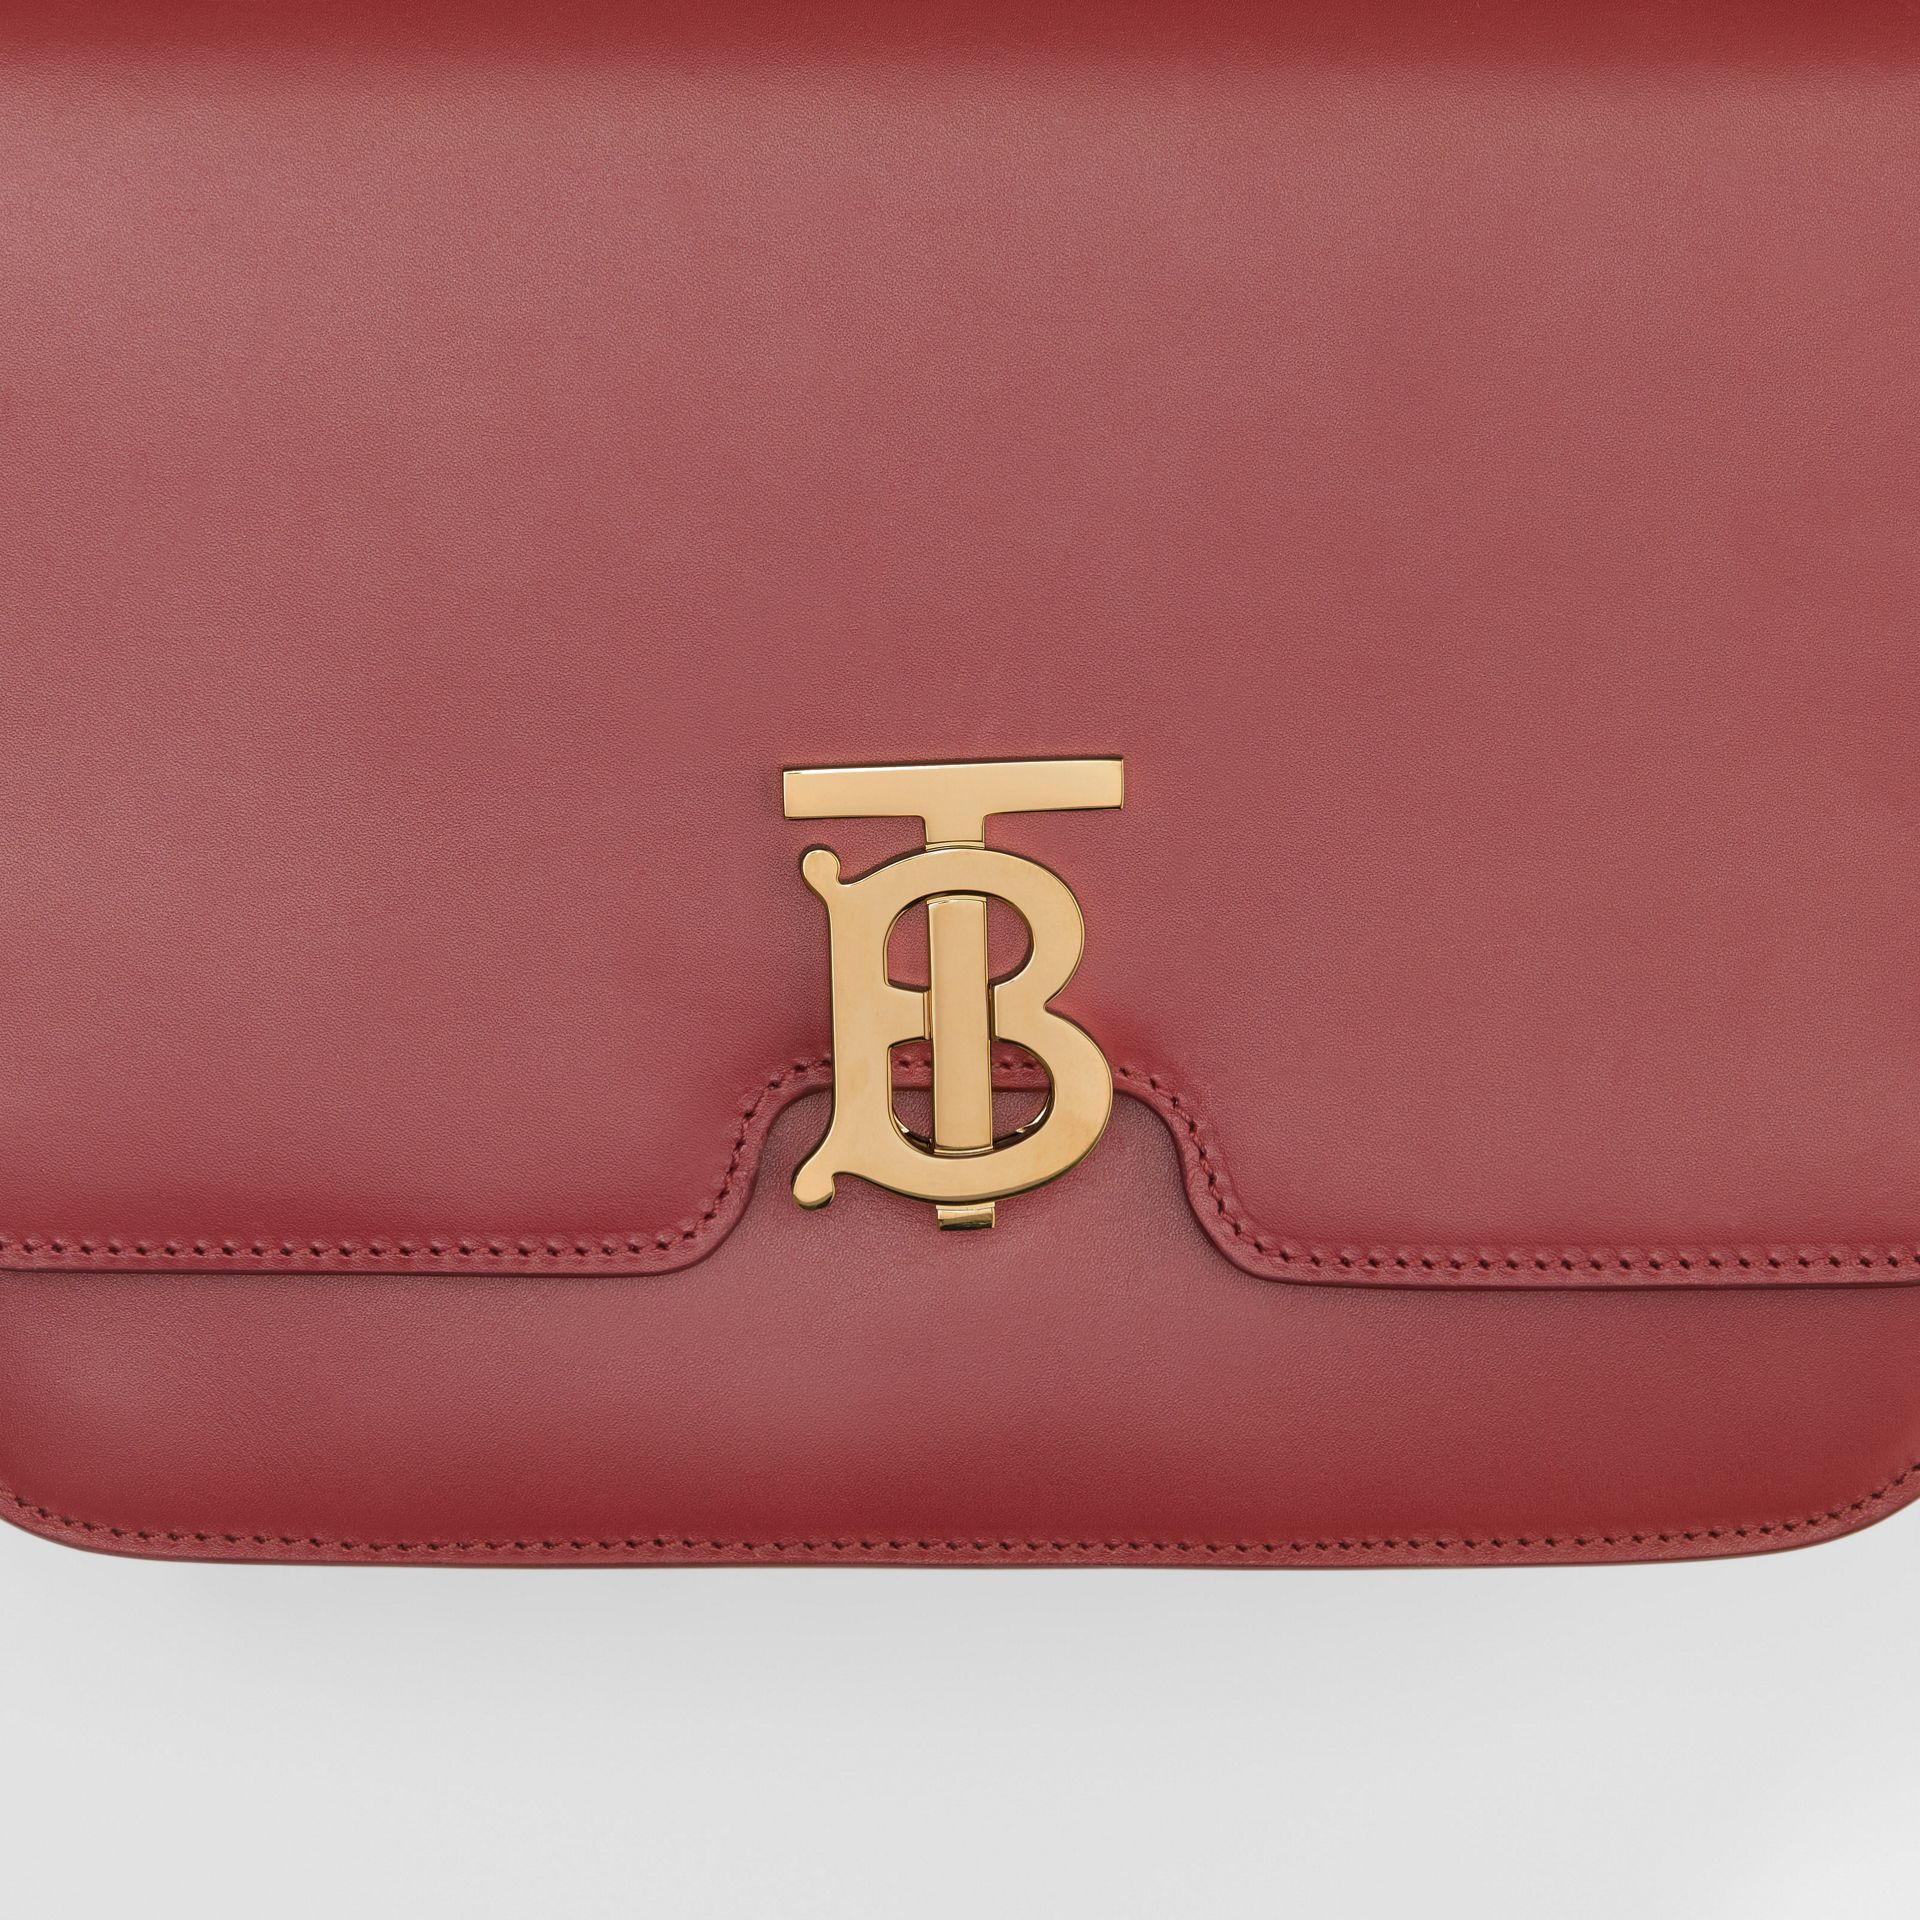 Medium Leather TB Bag in Crimson - Women | Burberry Canada - gallery image 1